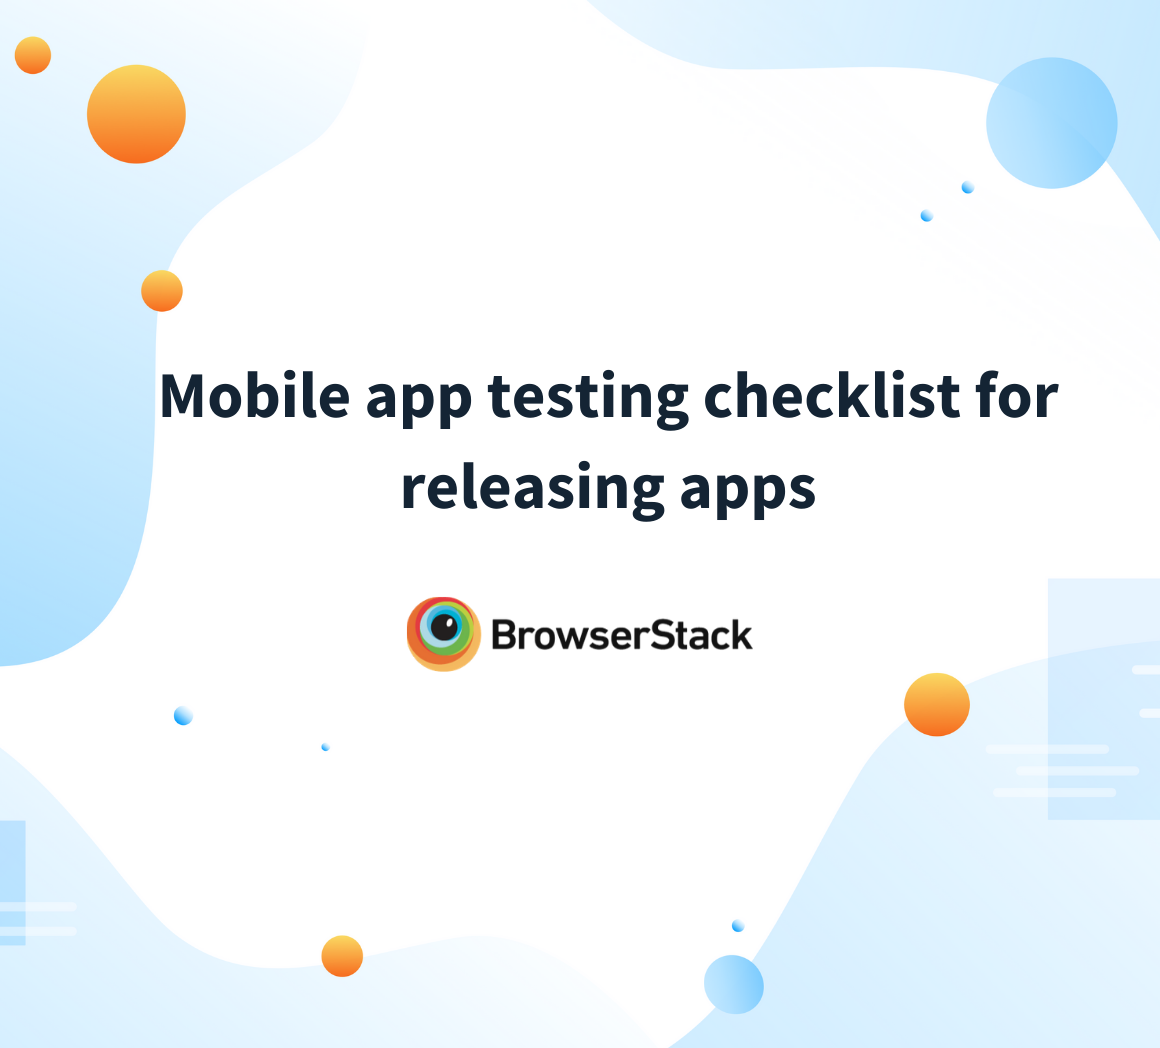 Mobile app testing checklist for releasing apps